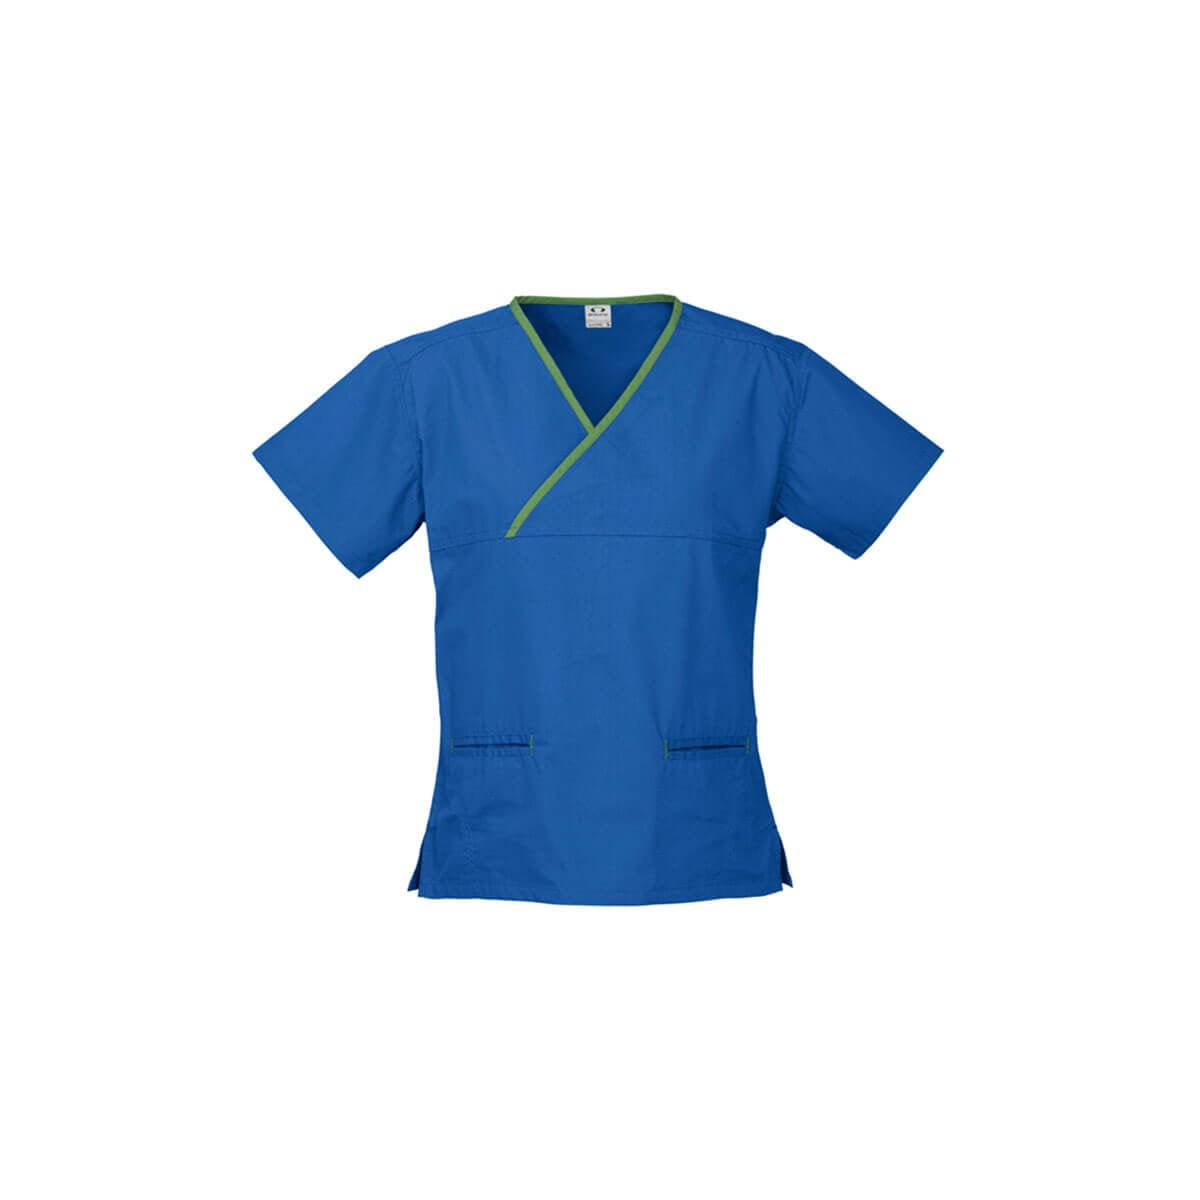 Ladies Contrast Crossover Scrubs Top-Royal / Lime